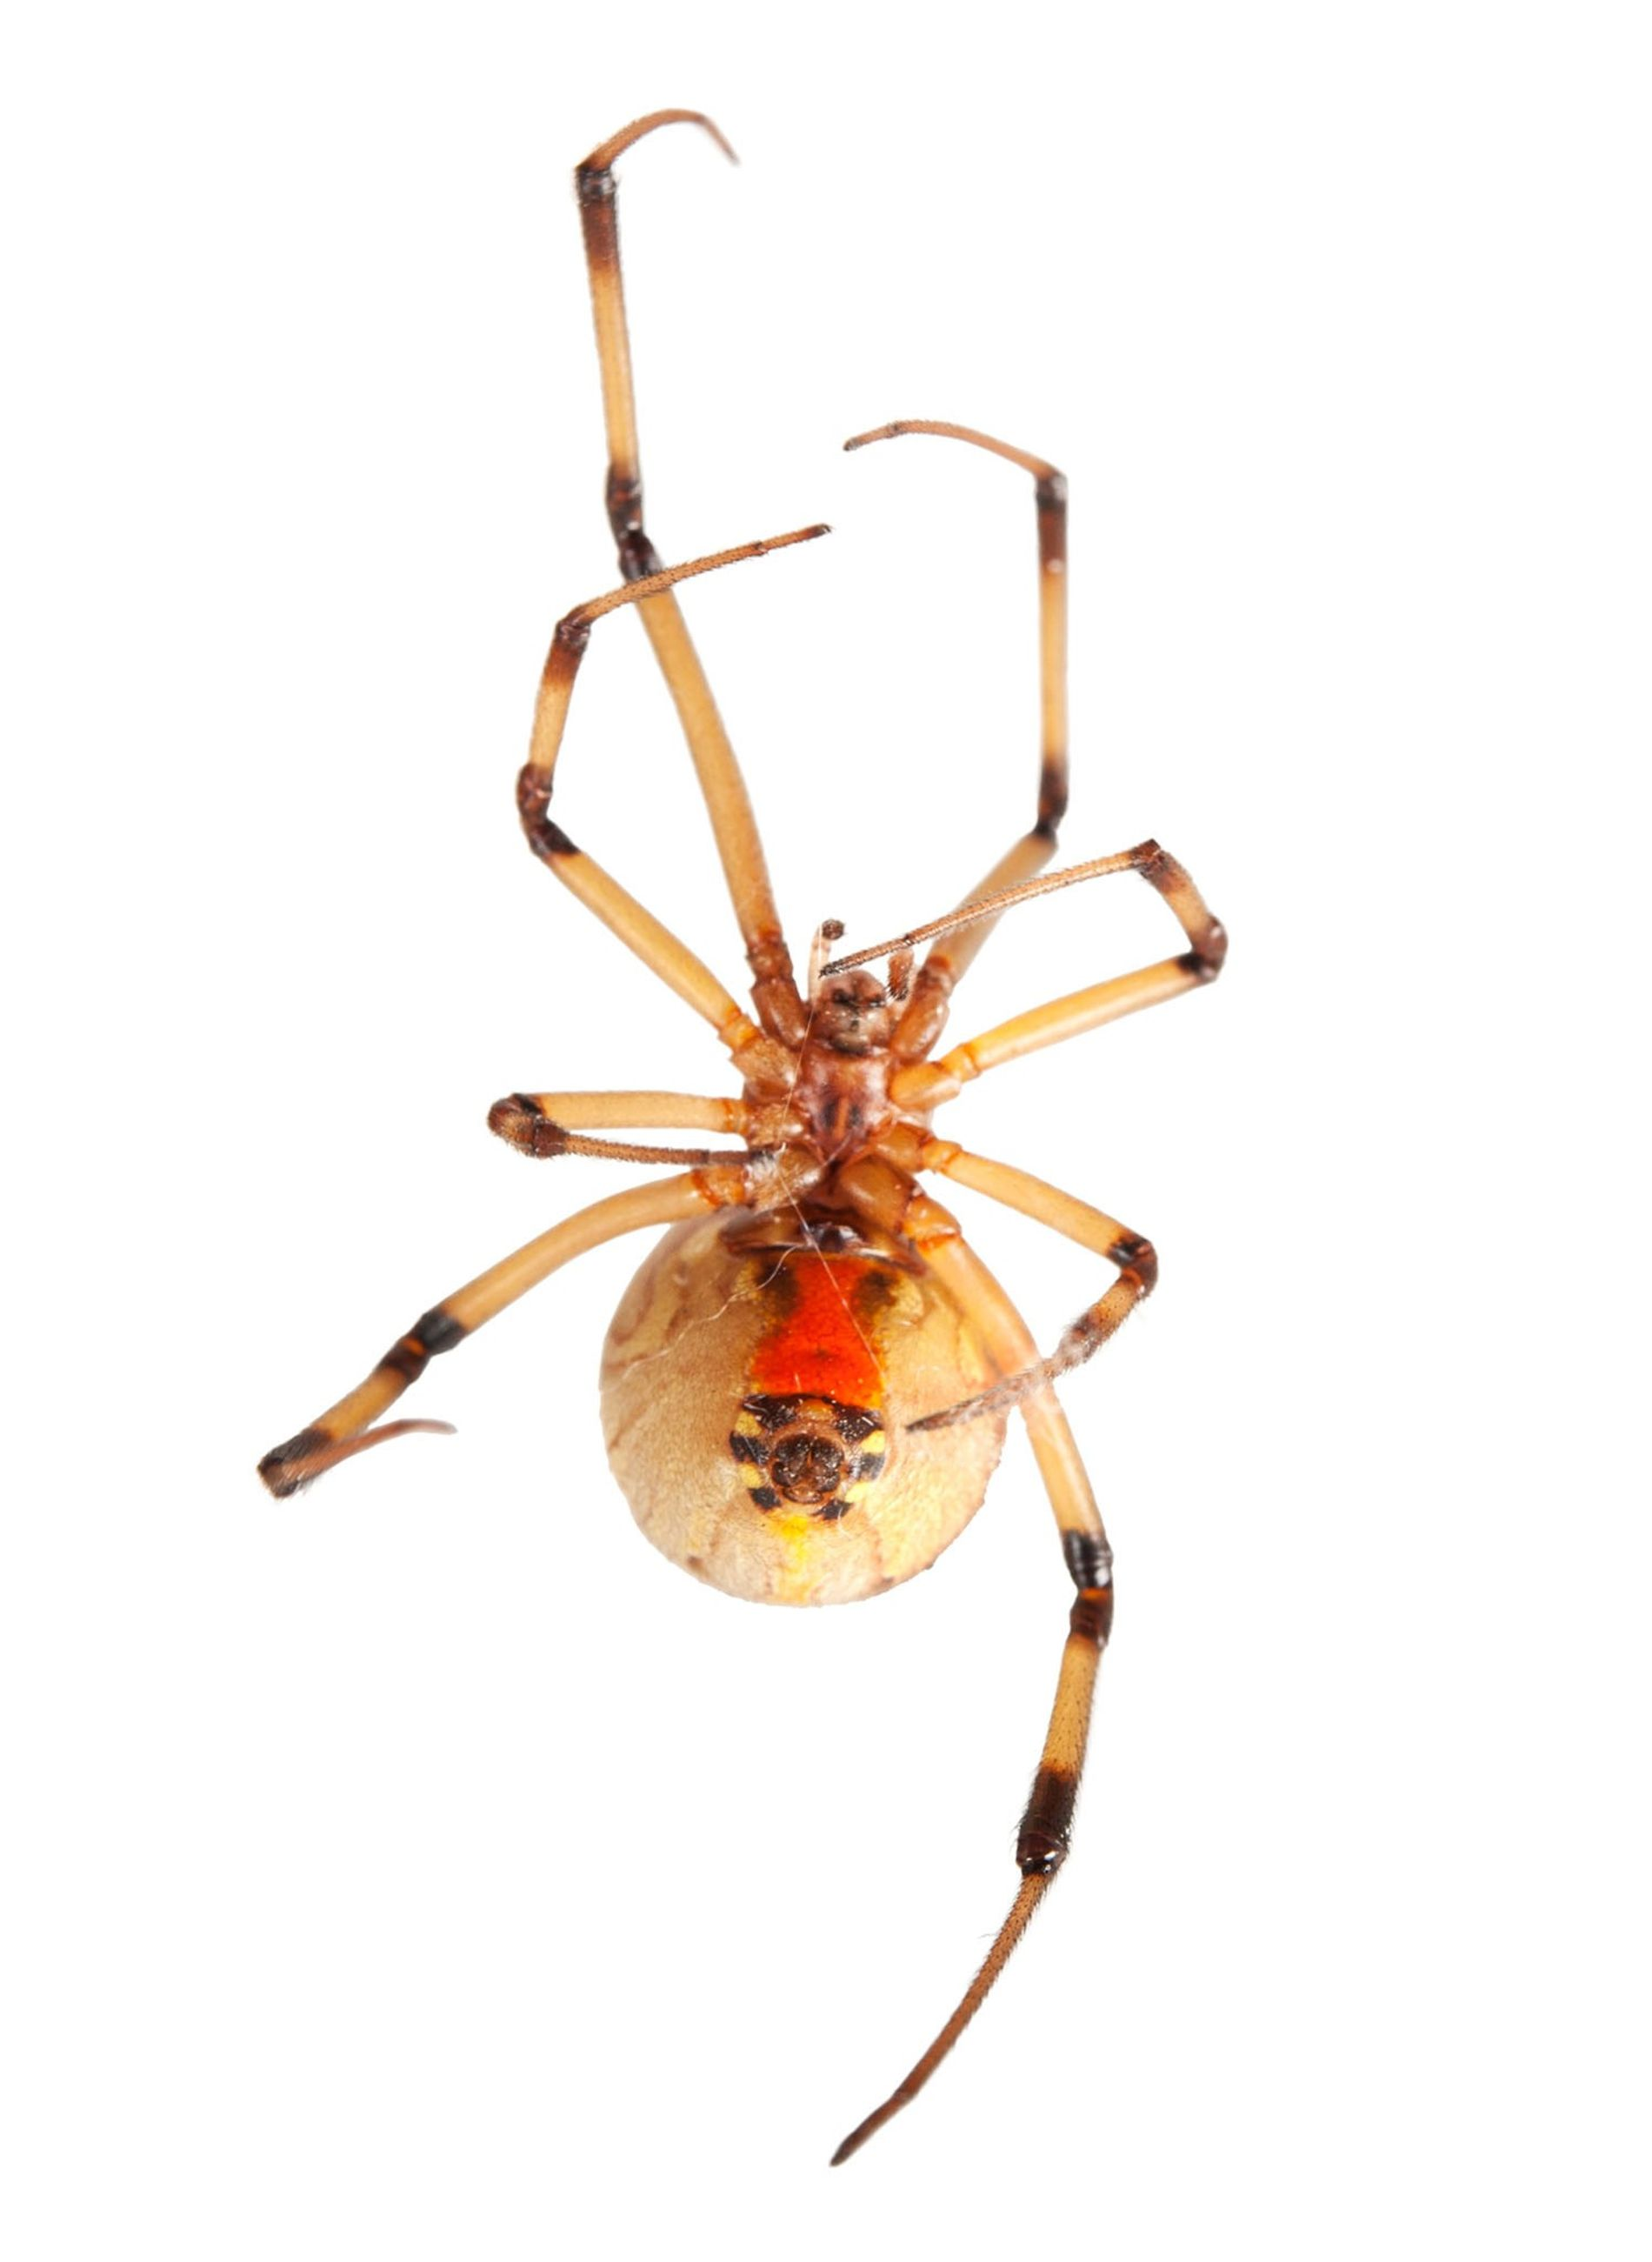 Why do these spiders choose sex and death, rather than sex?